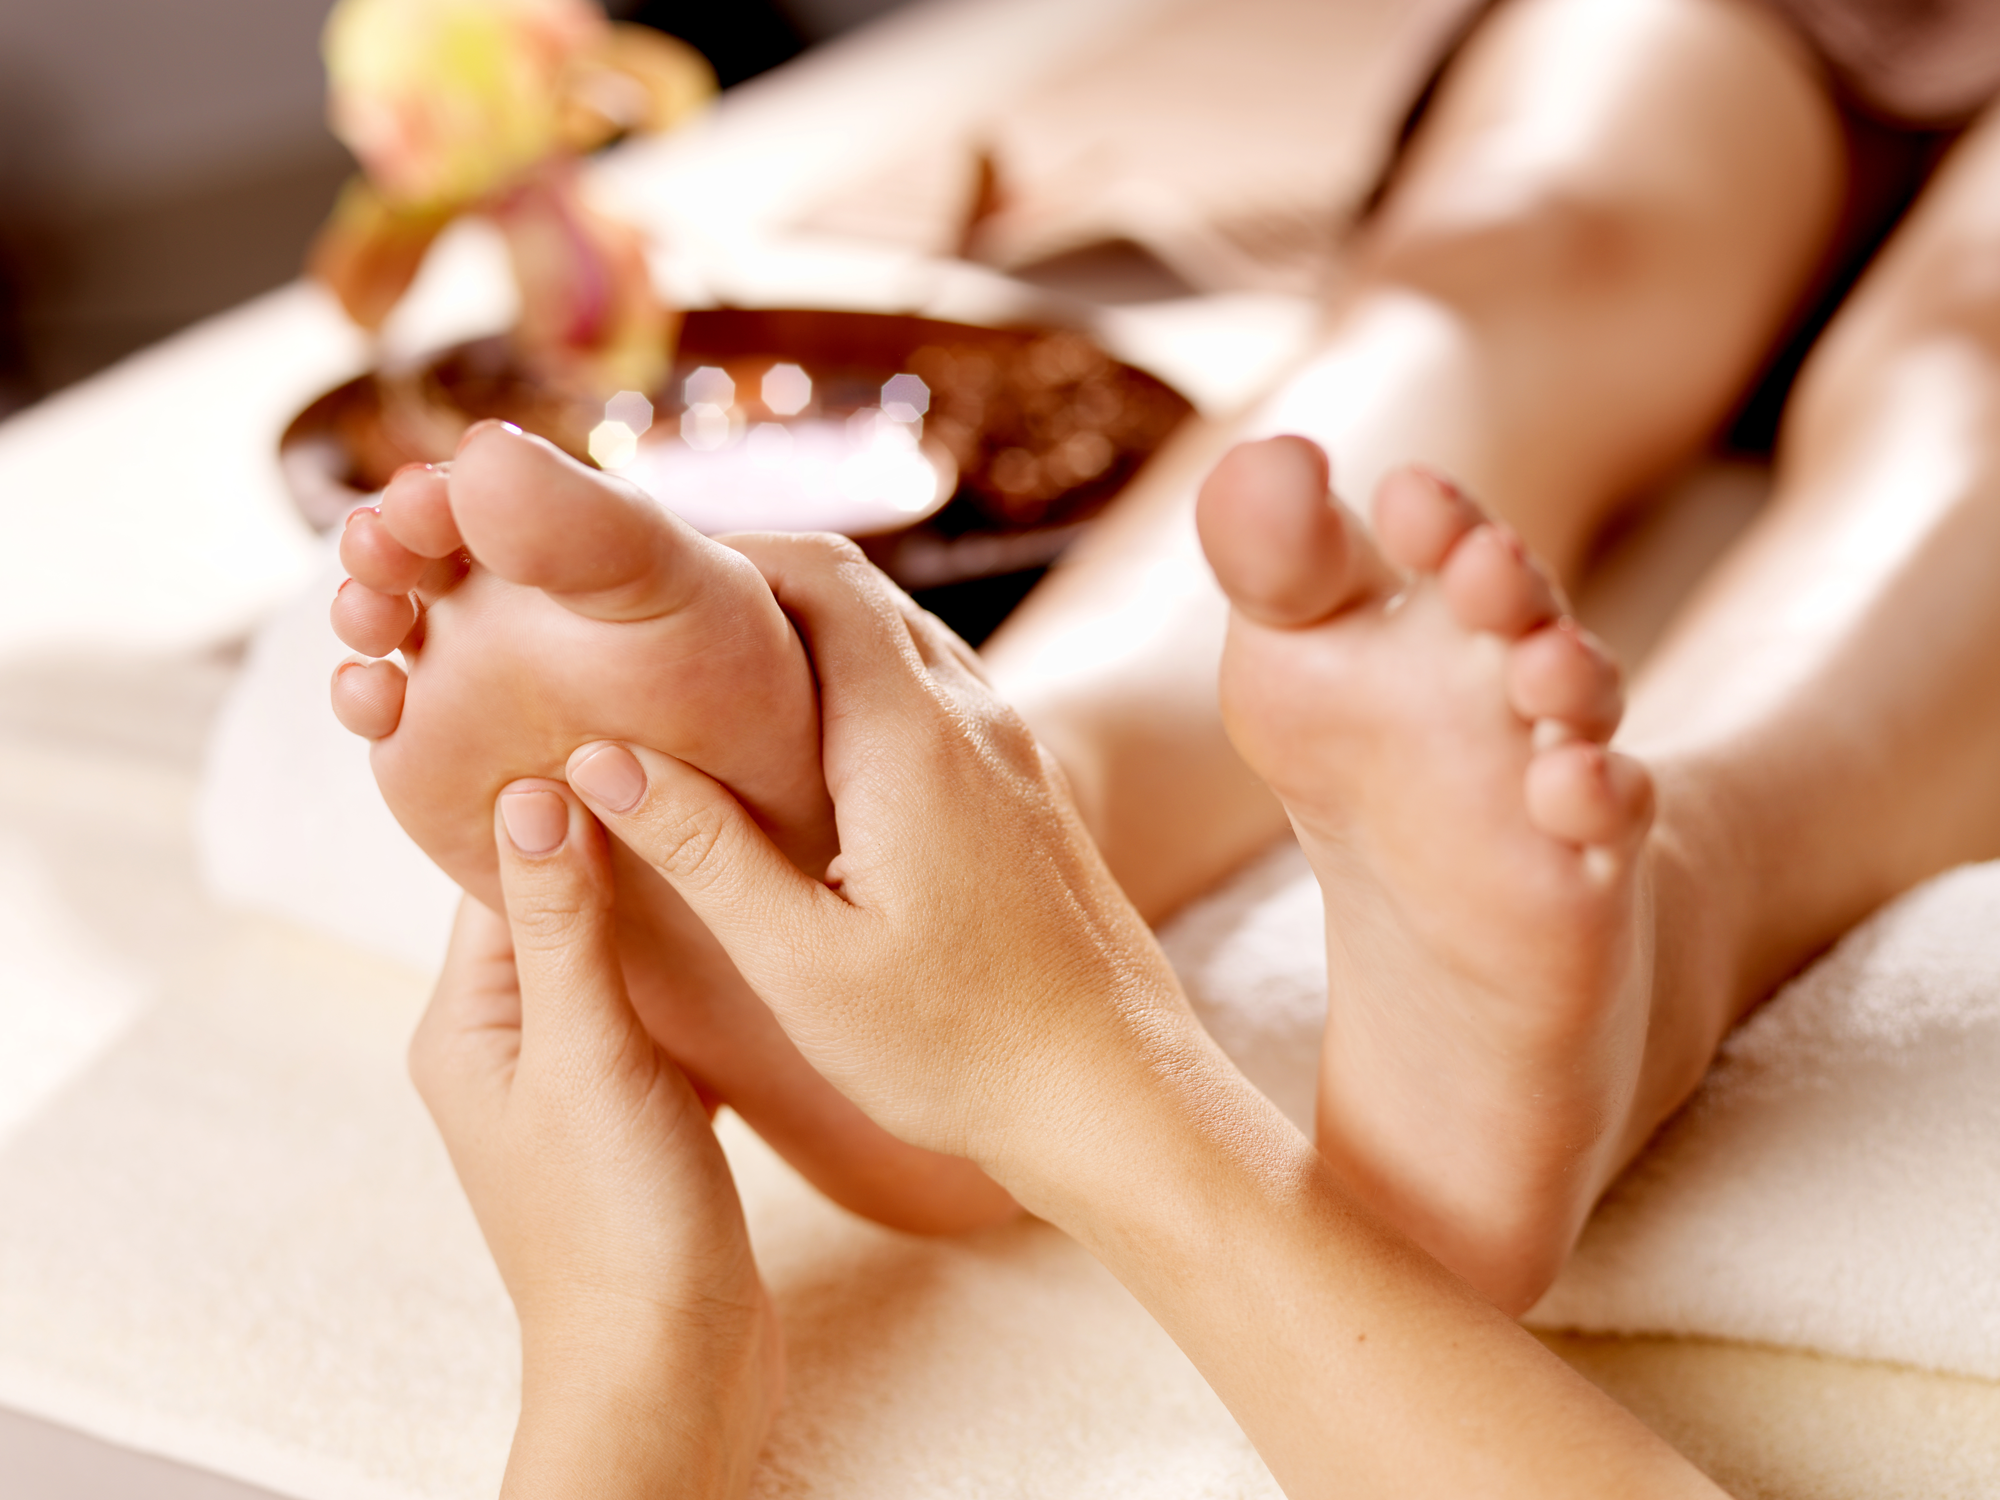 foot-massage-image.png